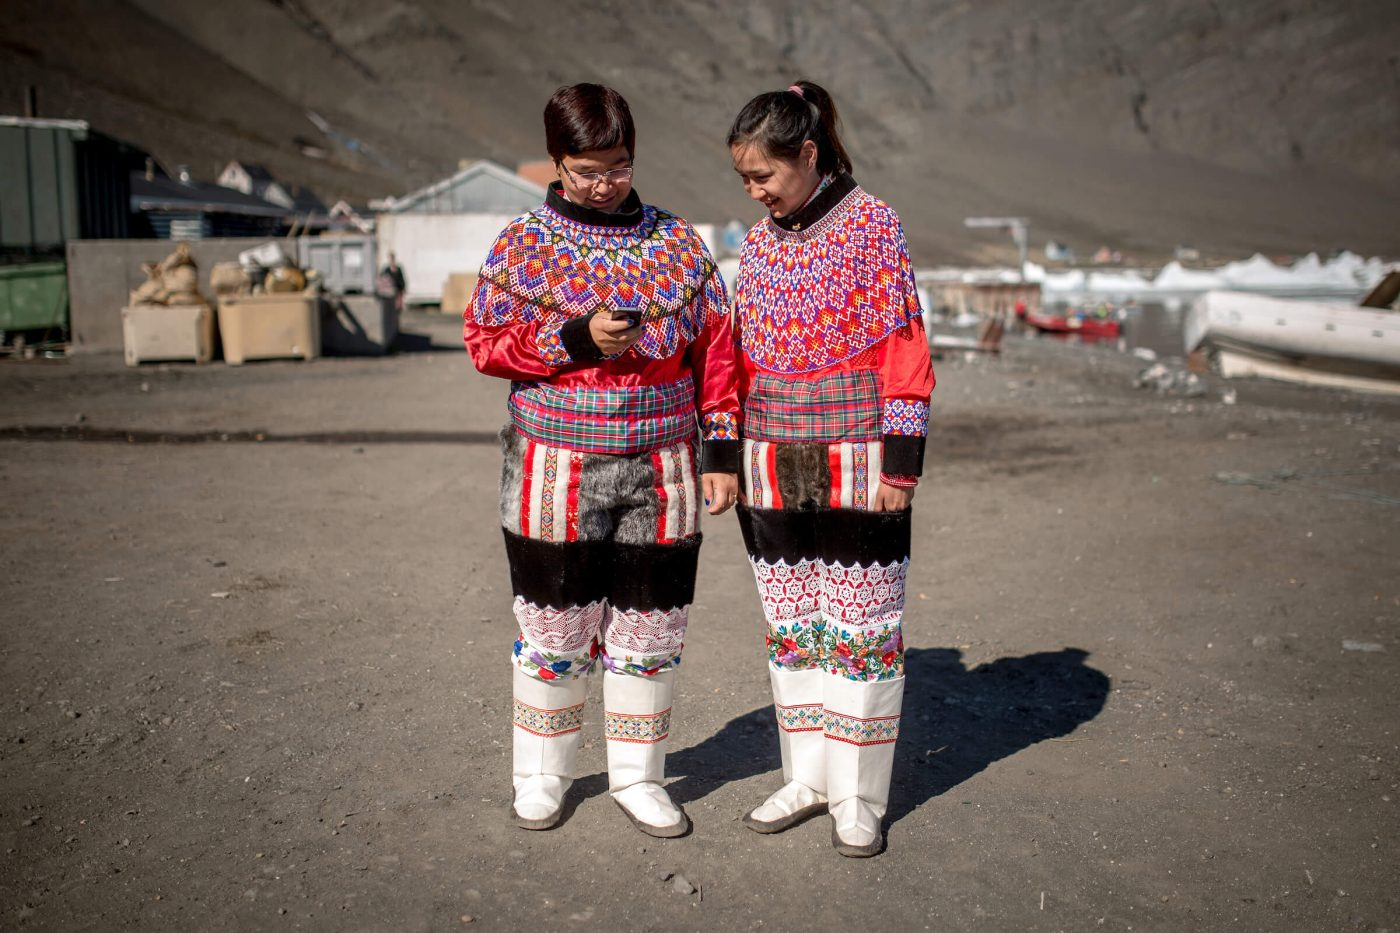 Two girls from Illorsuit in Greenland on the smart phone while wearing national costumes. Photo by Mads Pihl.